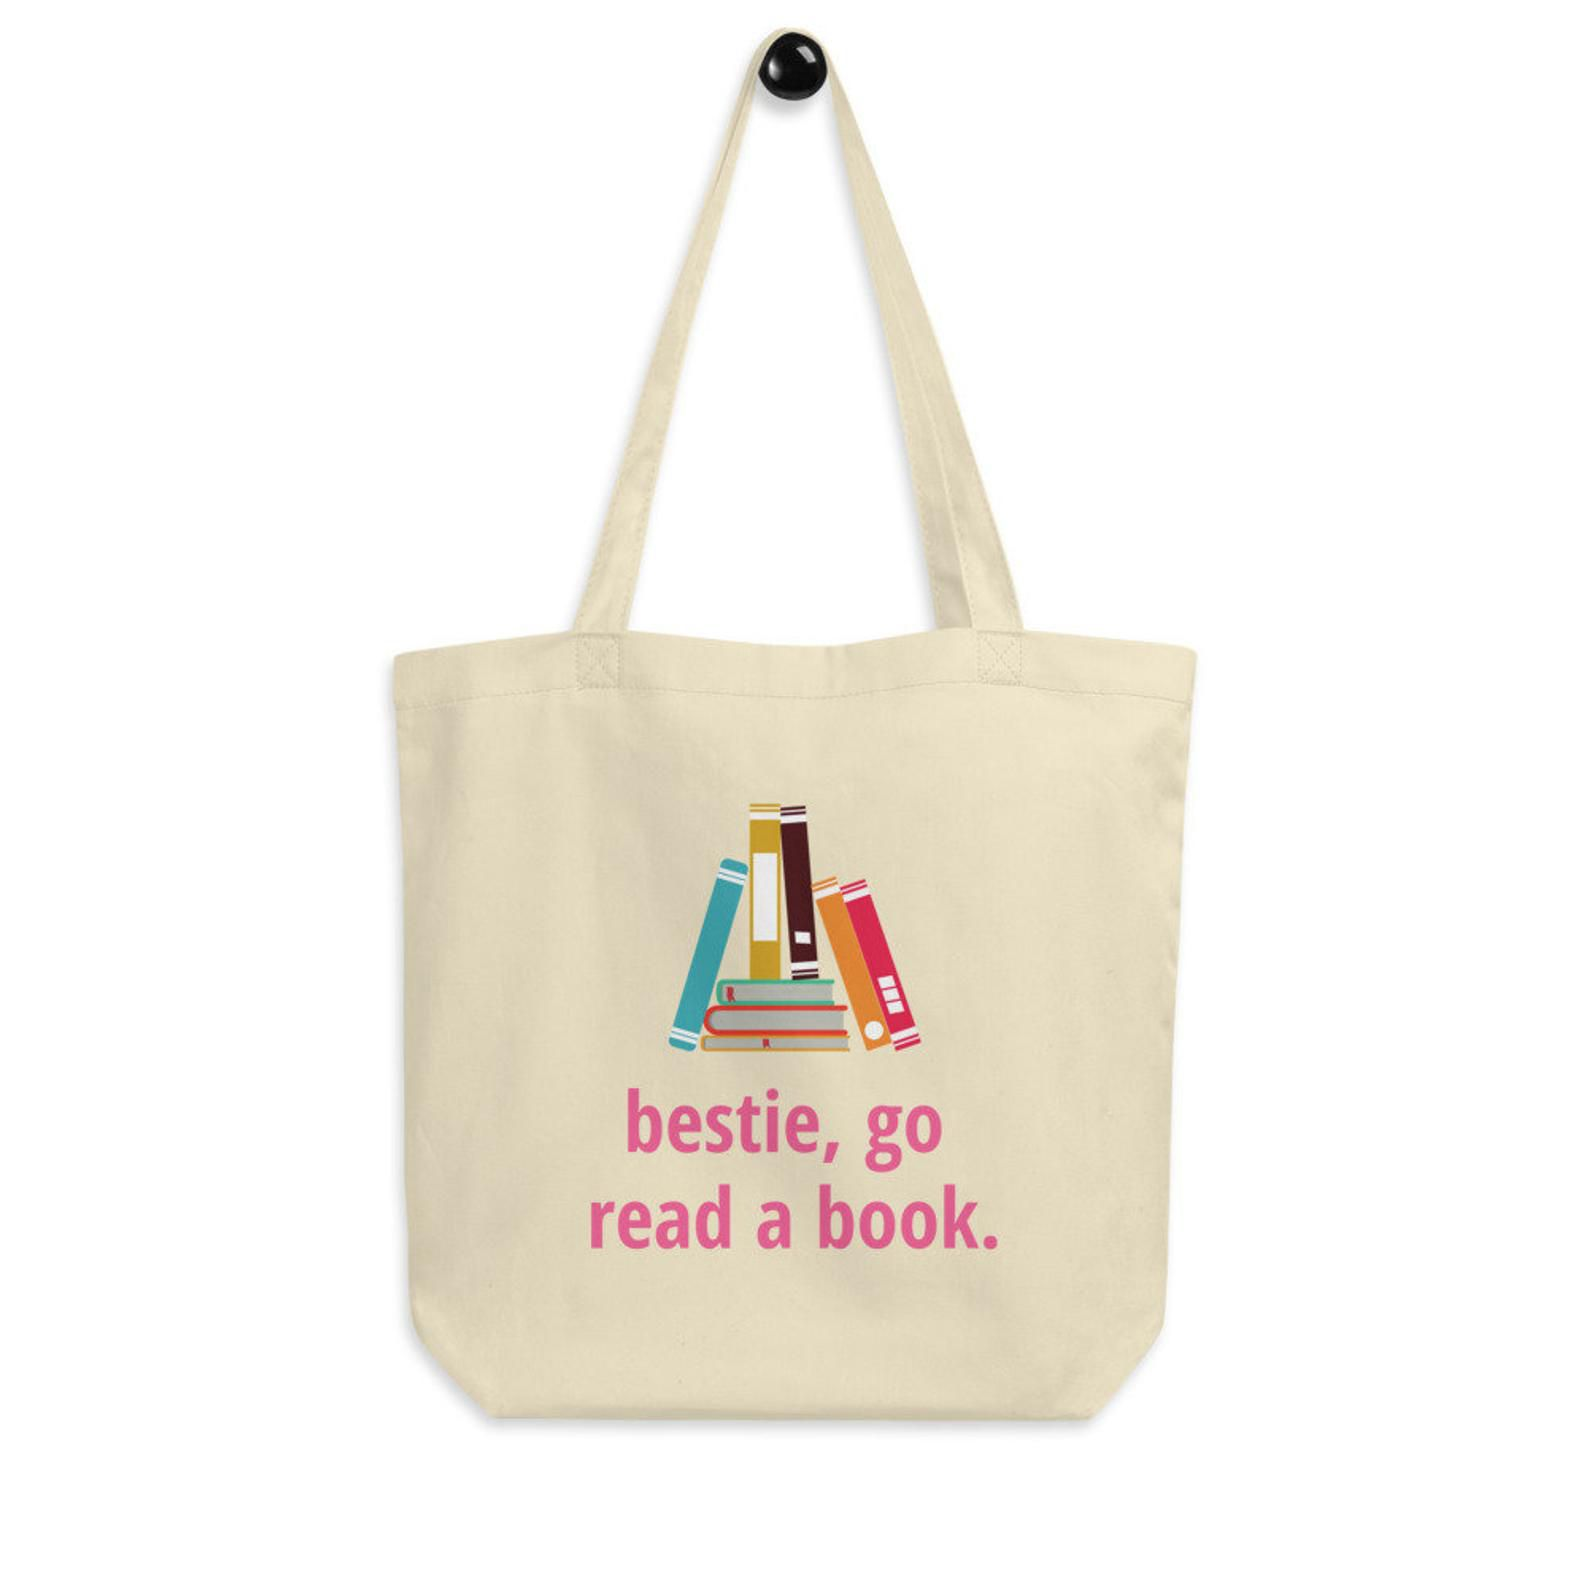 a beige tote bag with a book graphic and text that reads: bestie, go read a book